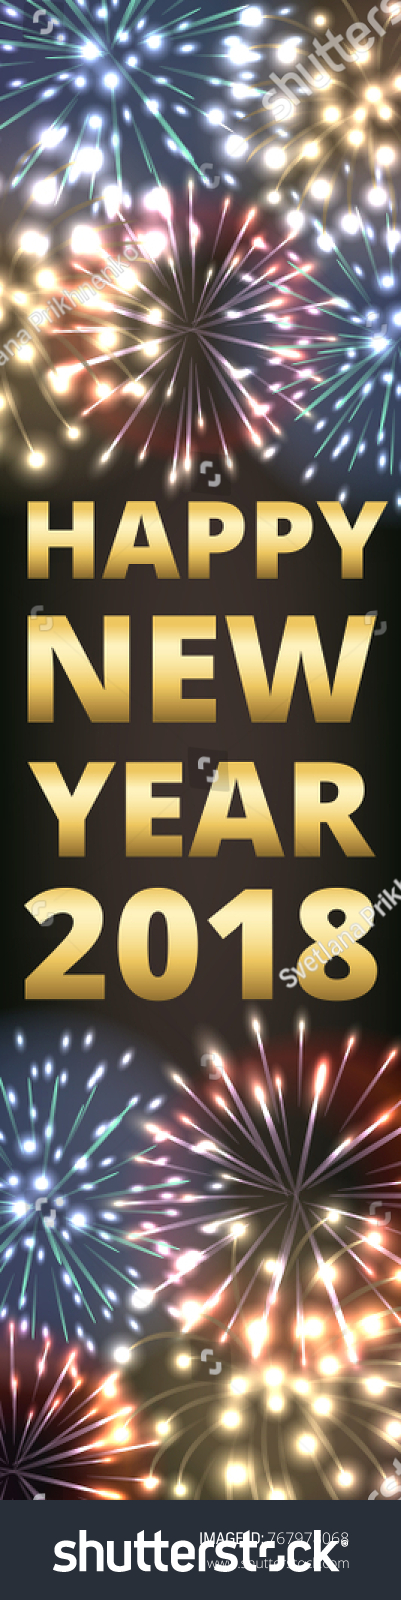 happy new year 2018 vertical web banner with fireworks